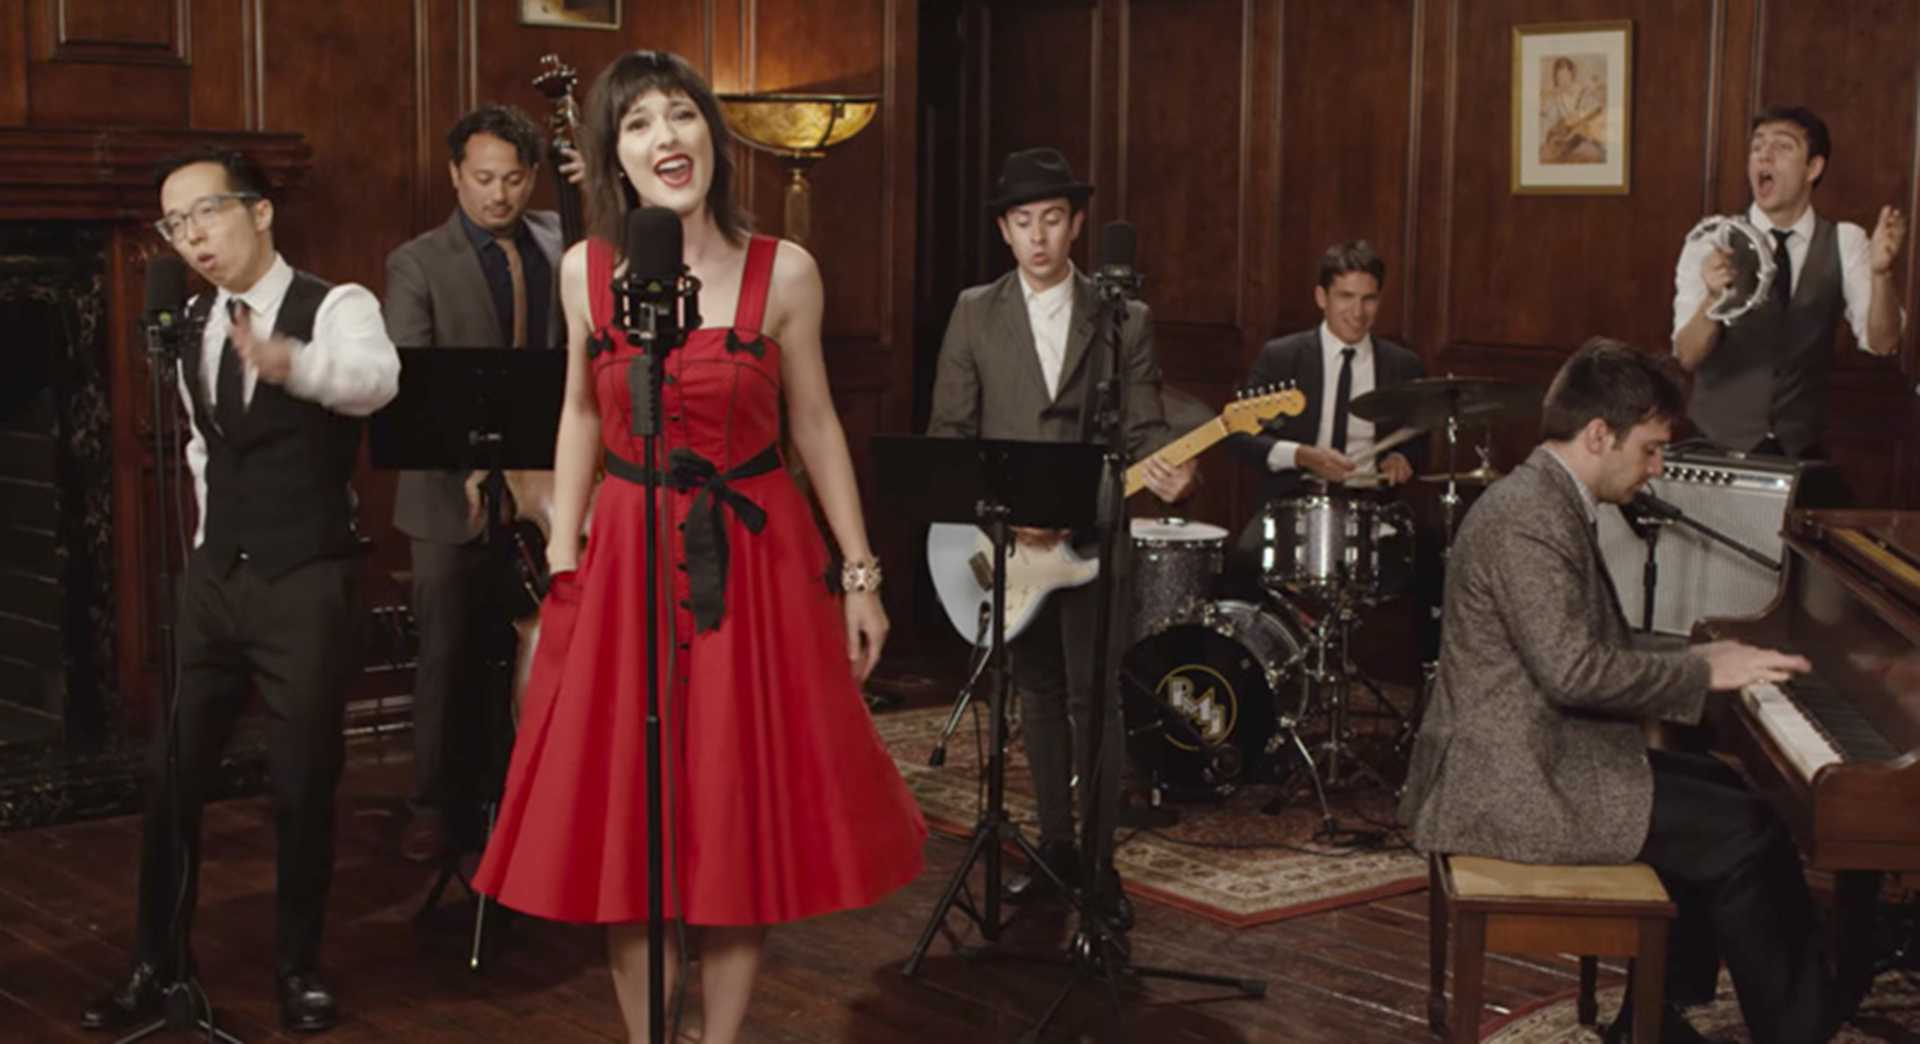 Postmodern Jukebox swings into Iowa City's Englert